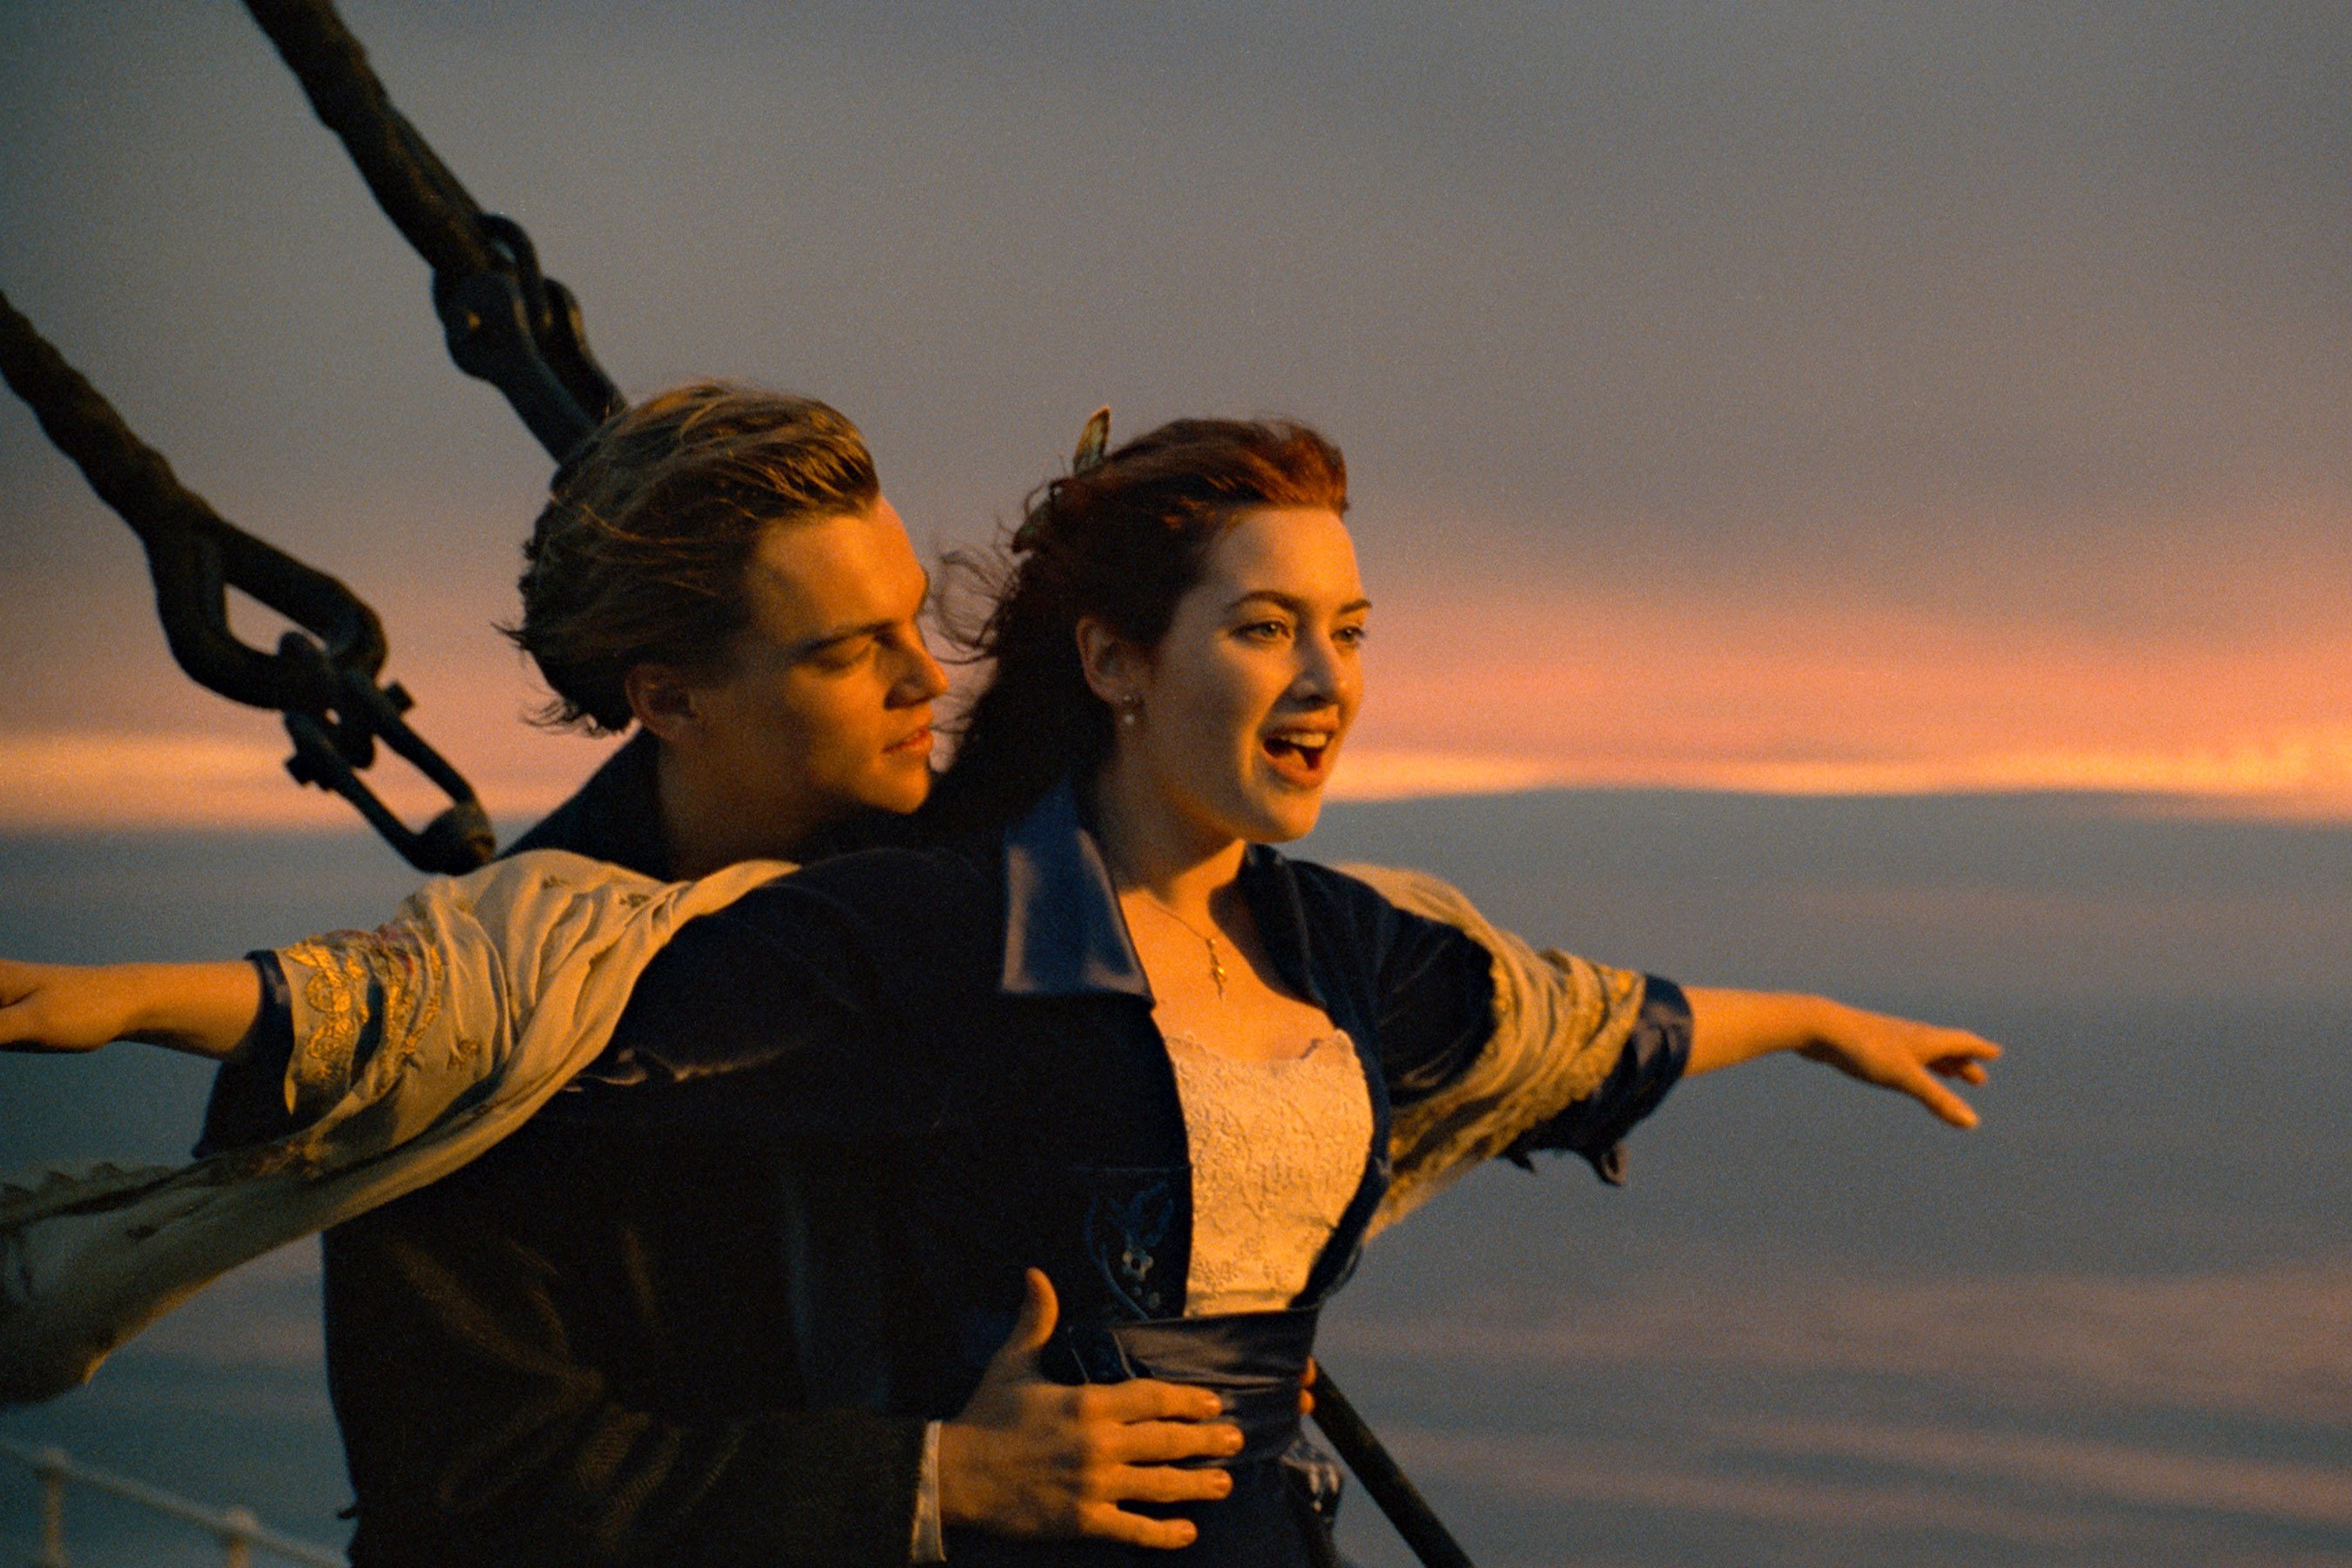 How James Cameron's Titanic sparked the most-watched Oscar ceremony ever